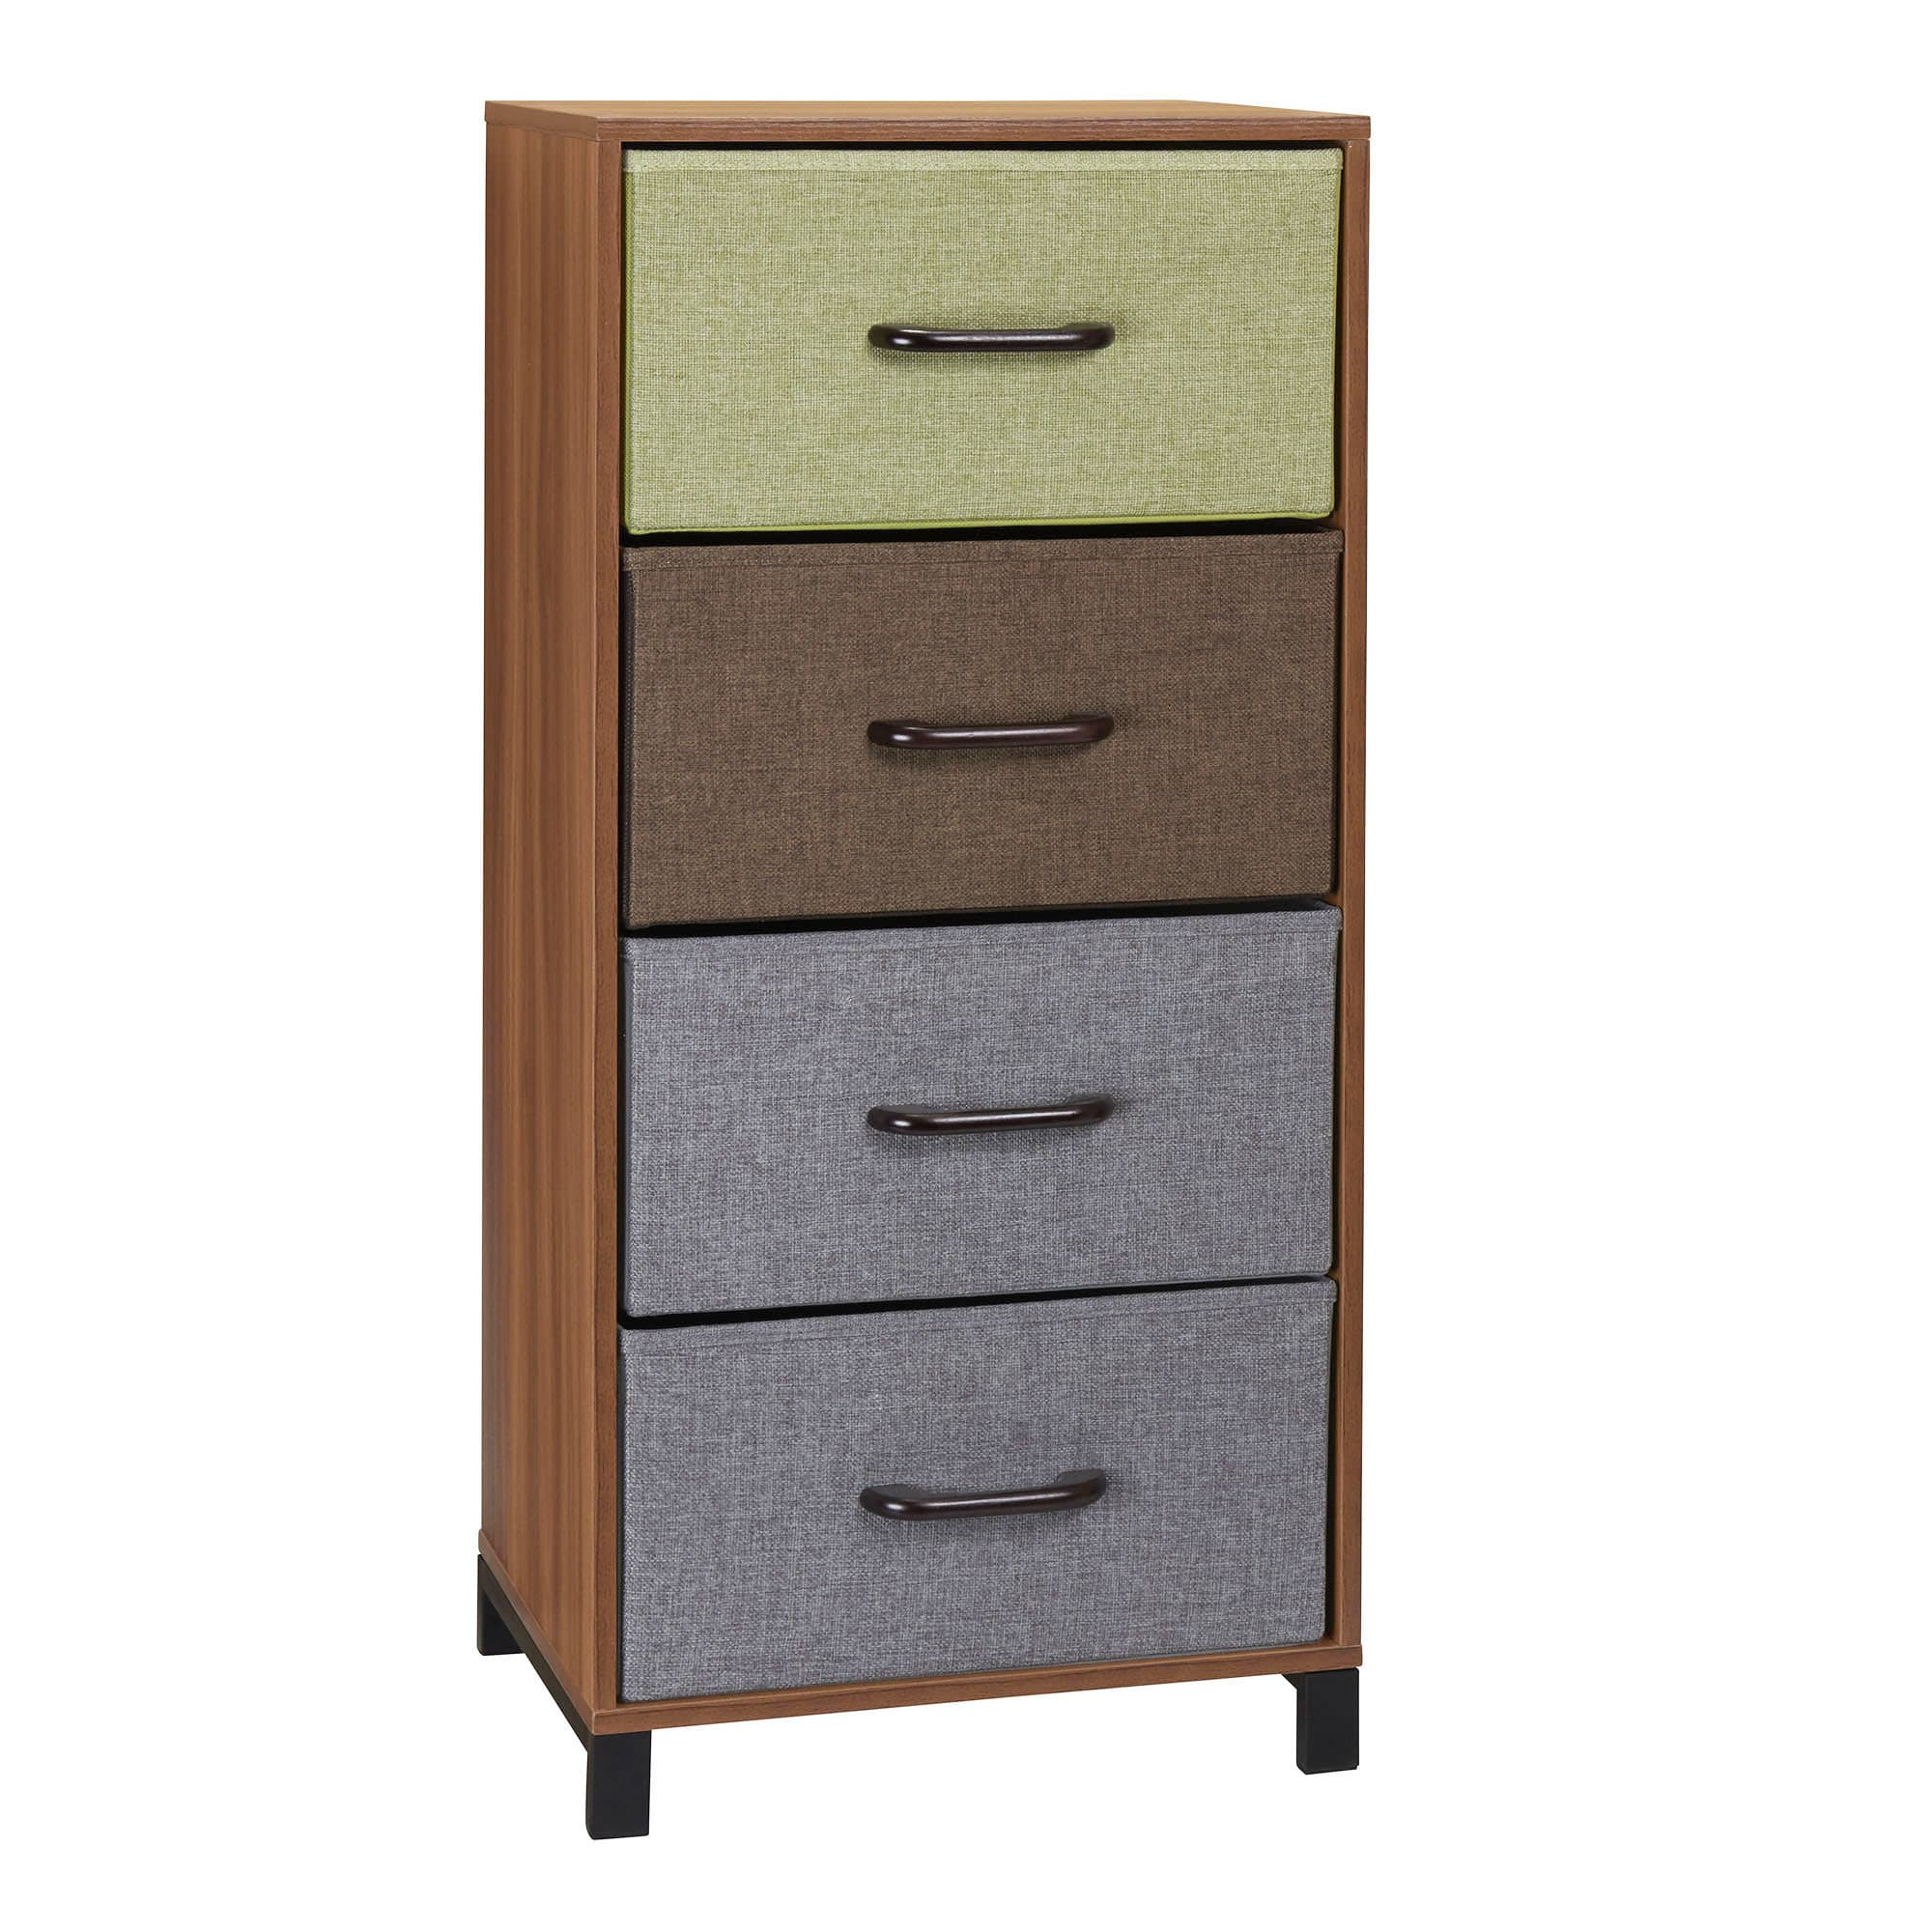 garden oak home weathered drawer gray shoreline shipping epona free america the barn furniture of product today overstock tracks nightstand